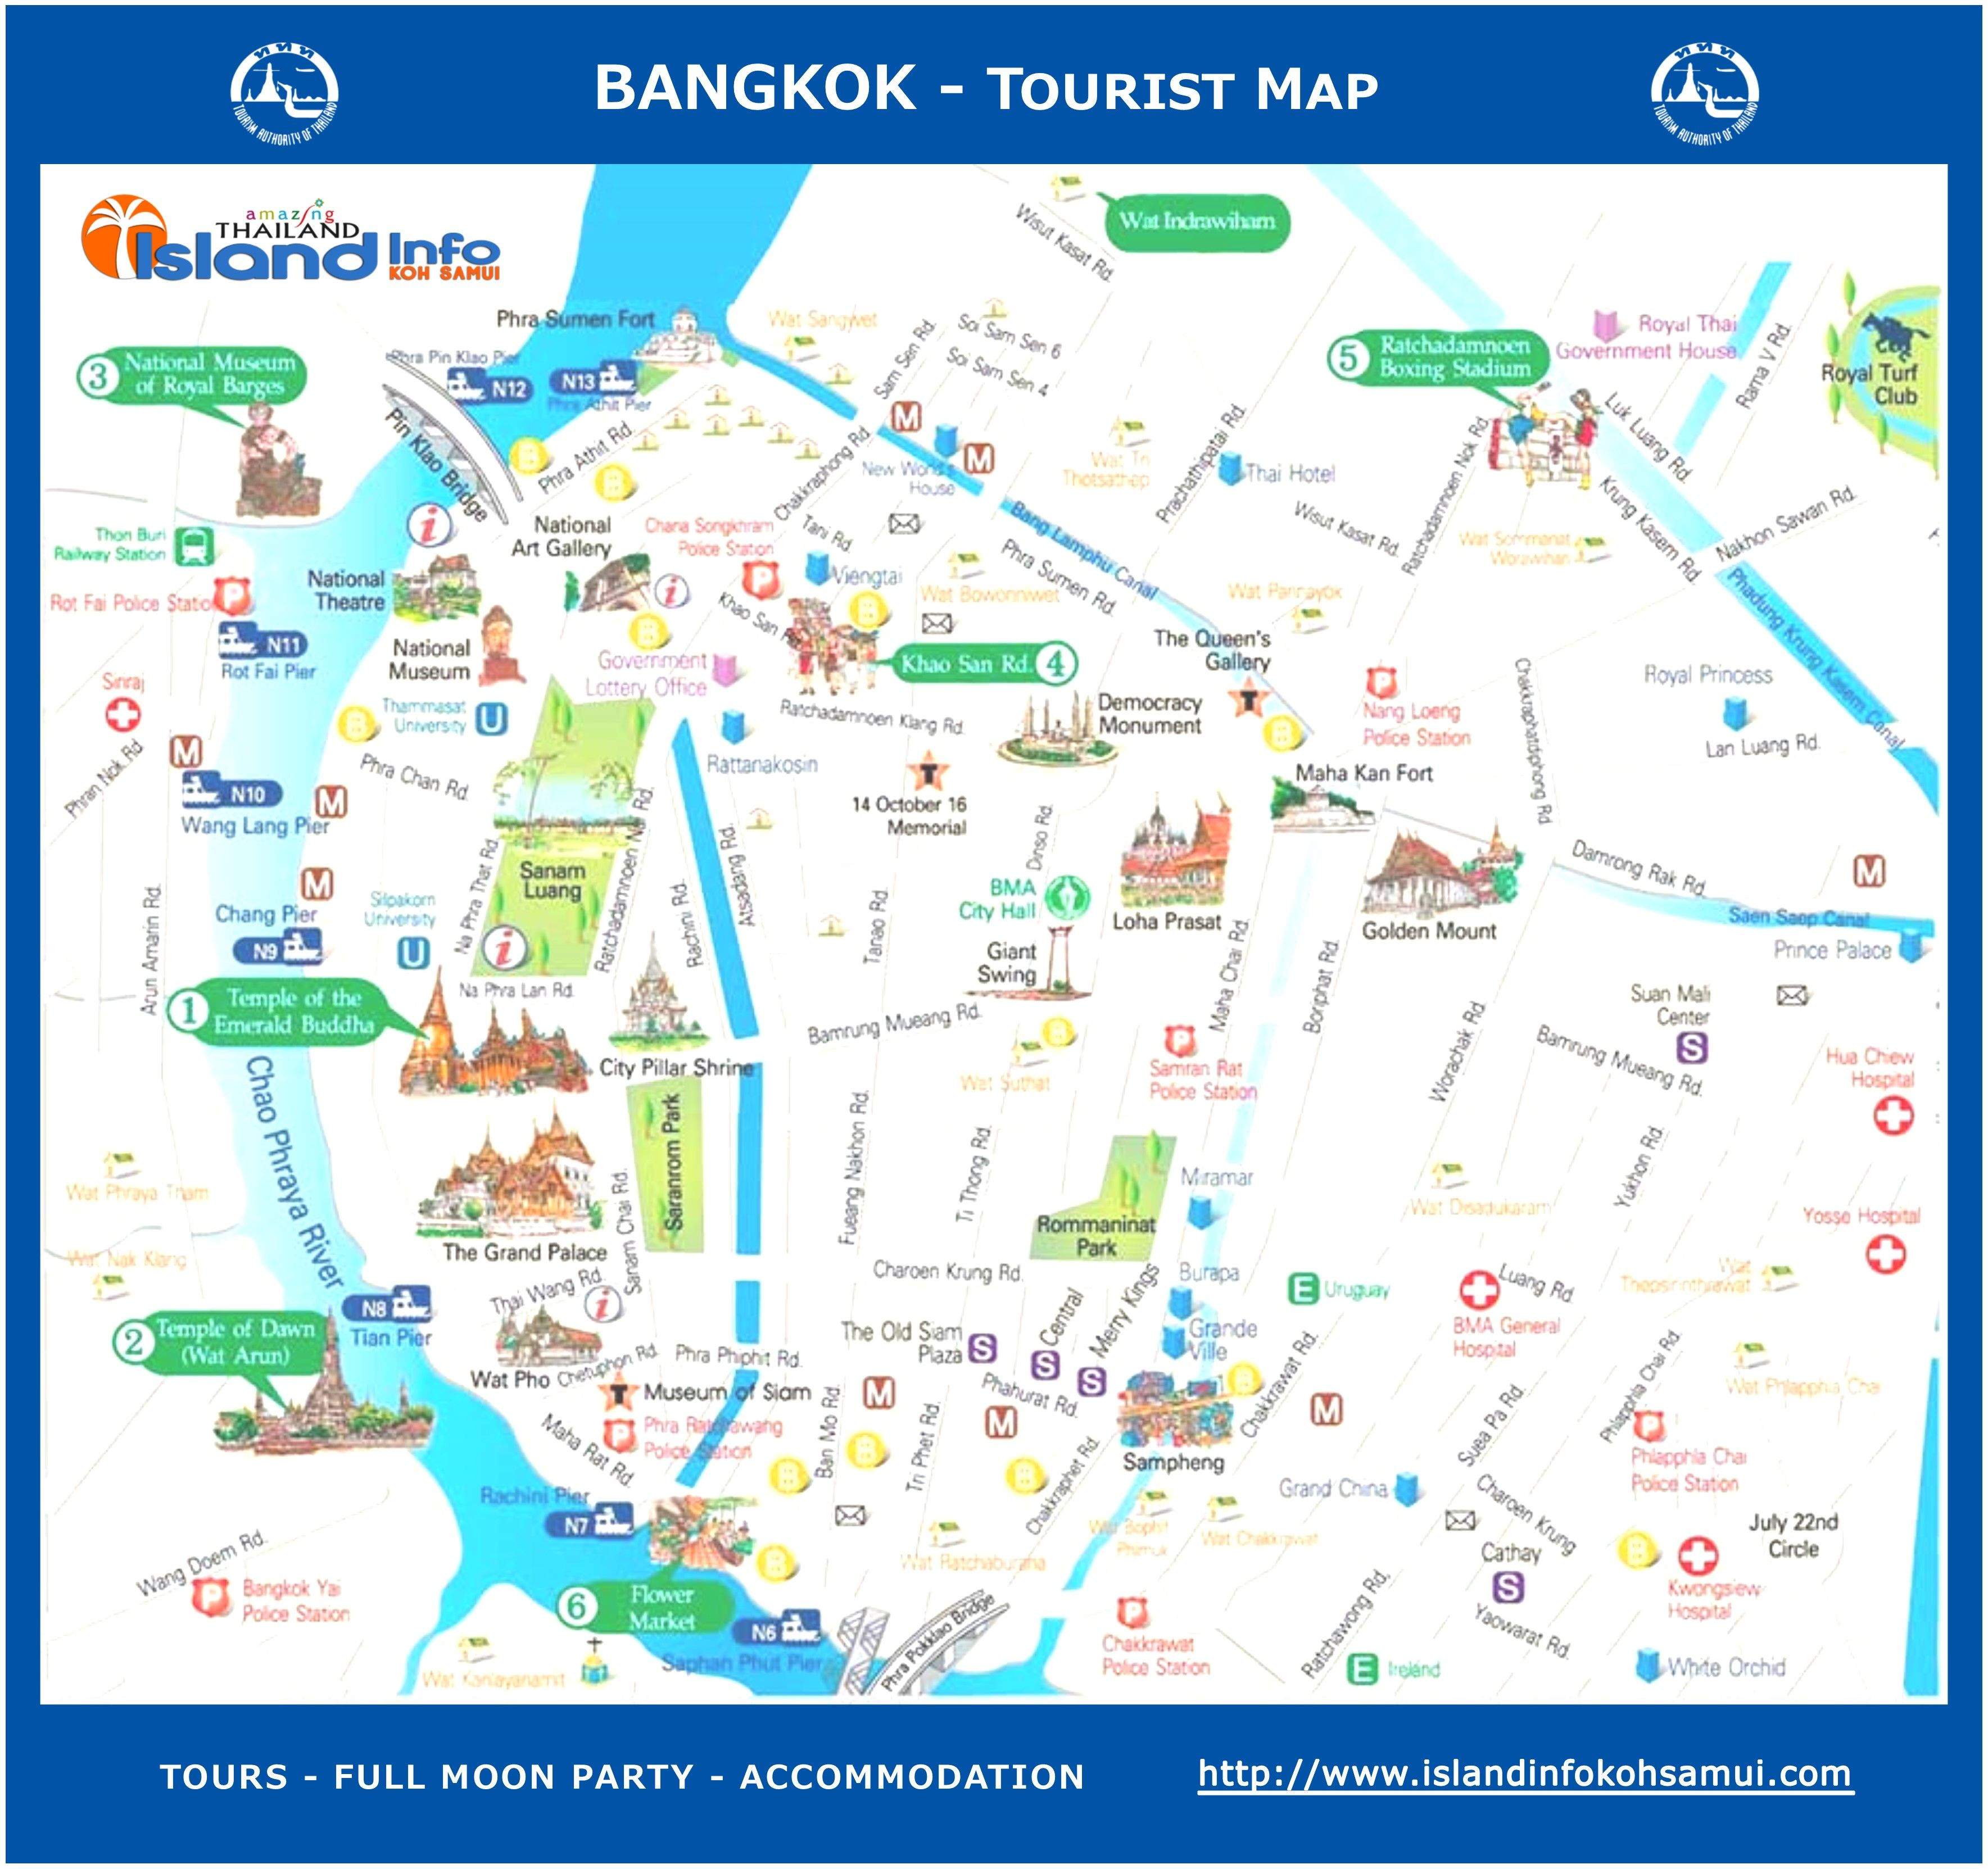 Northern California Attractions Map Best Of Bangkok Tourist Map - Northern California Attractions Map